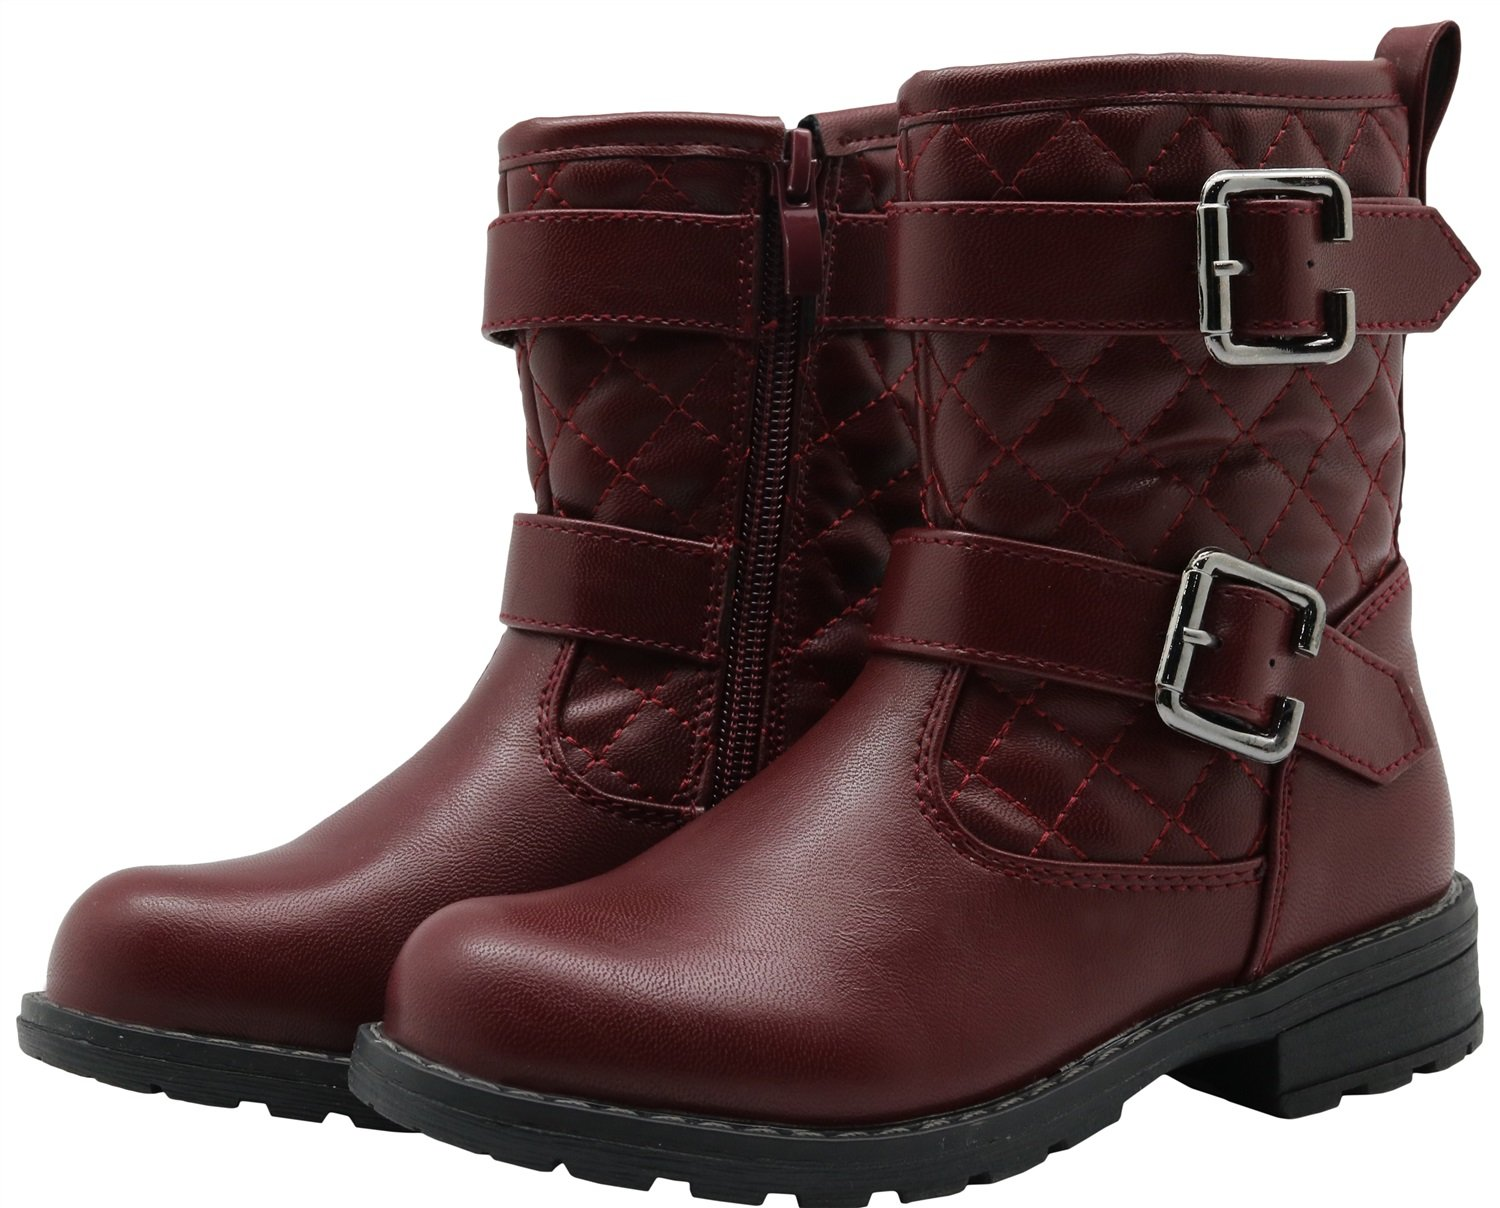 Little Kid Color : WineRed , Size : 11 UK Non-Slip Autumn Girls Shoes Flat Riding Boots Durable